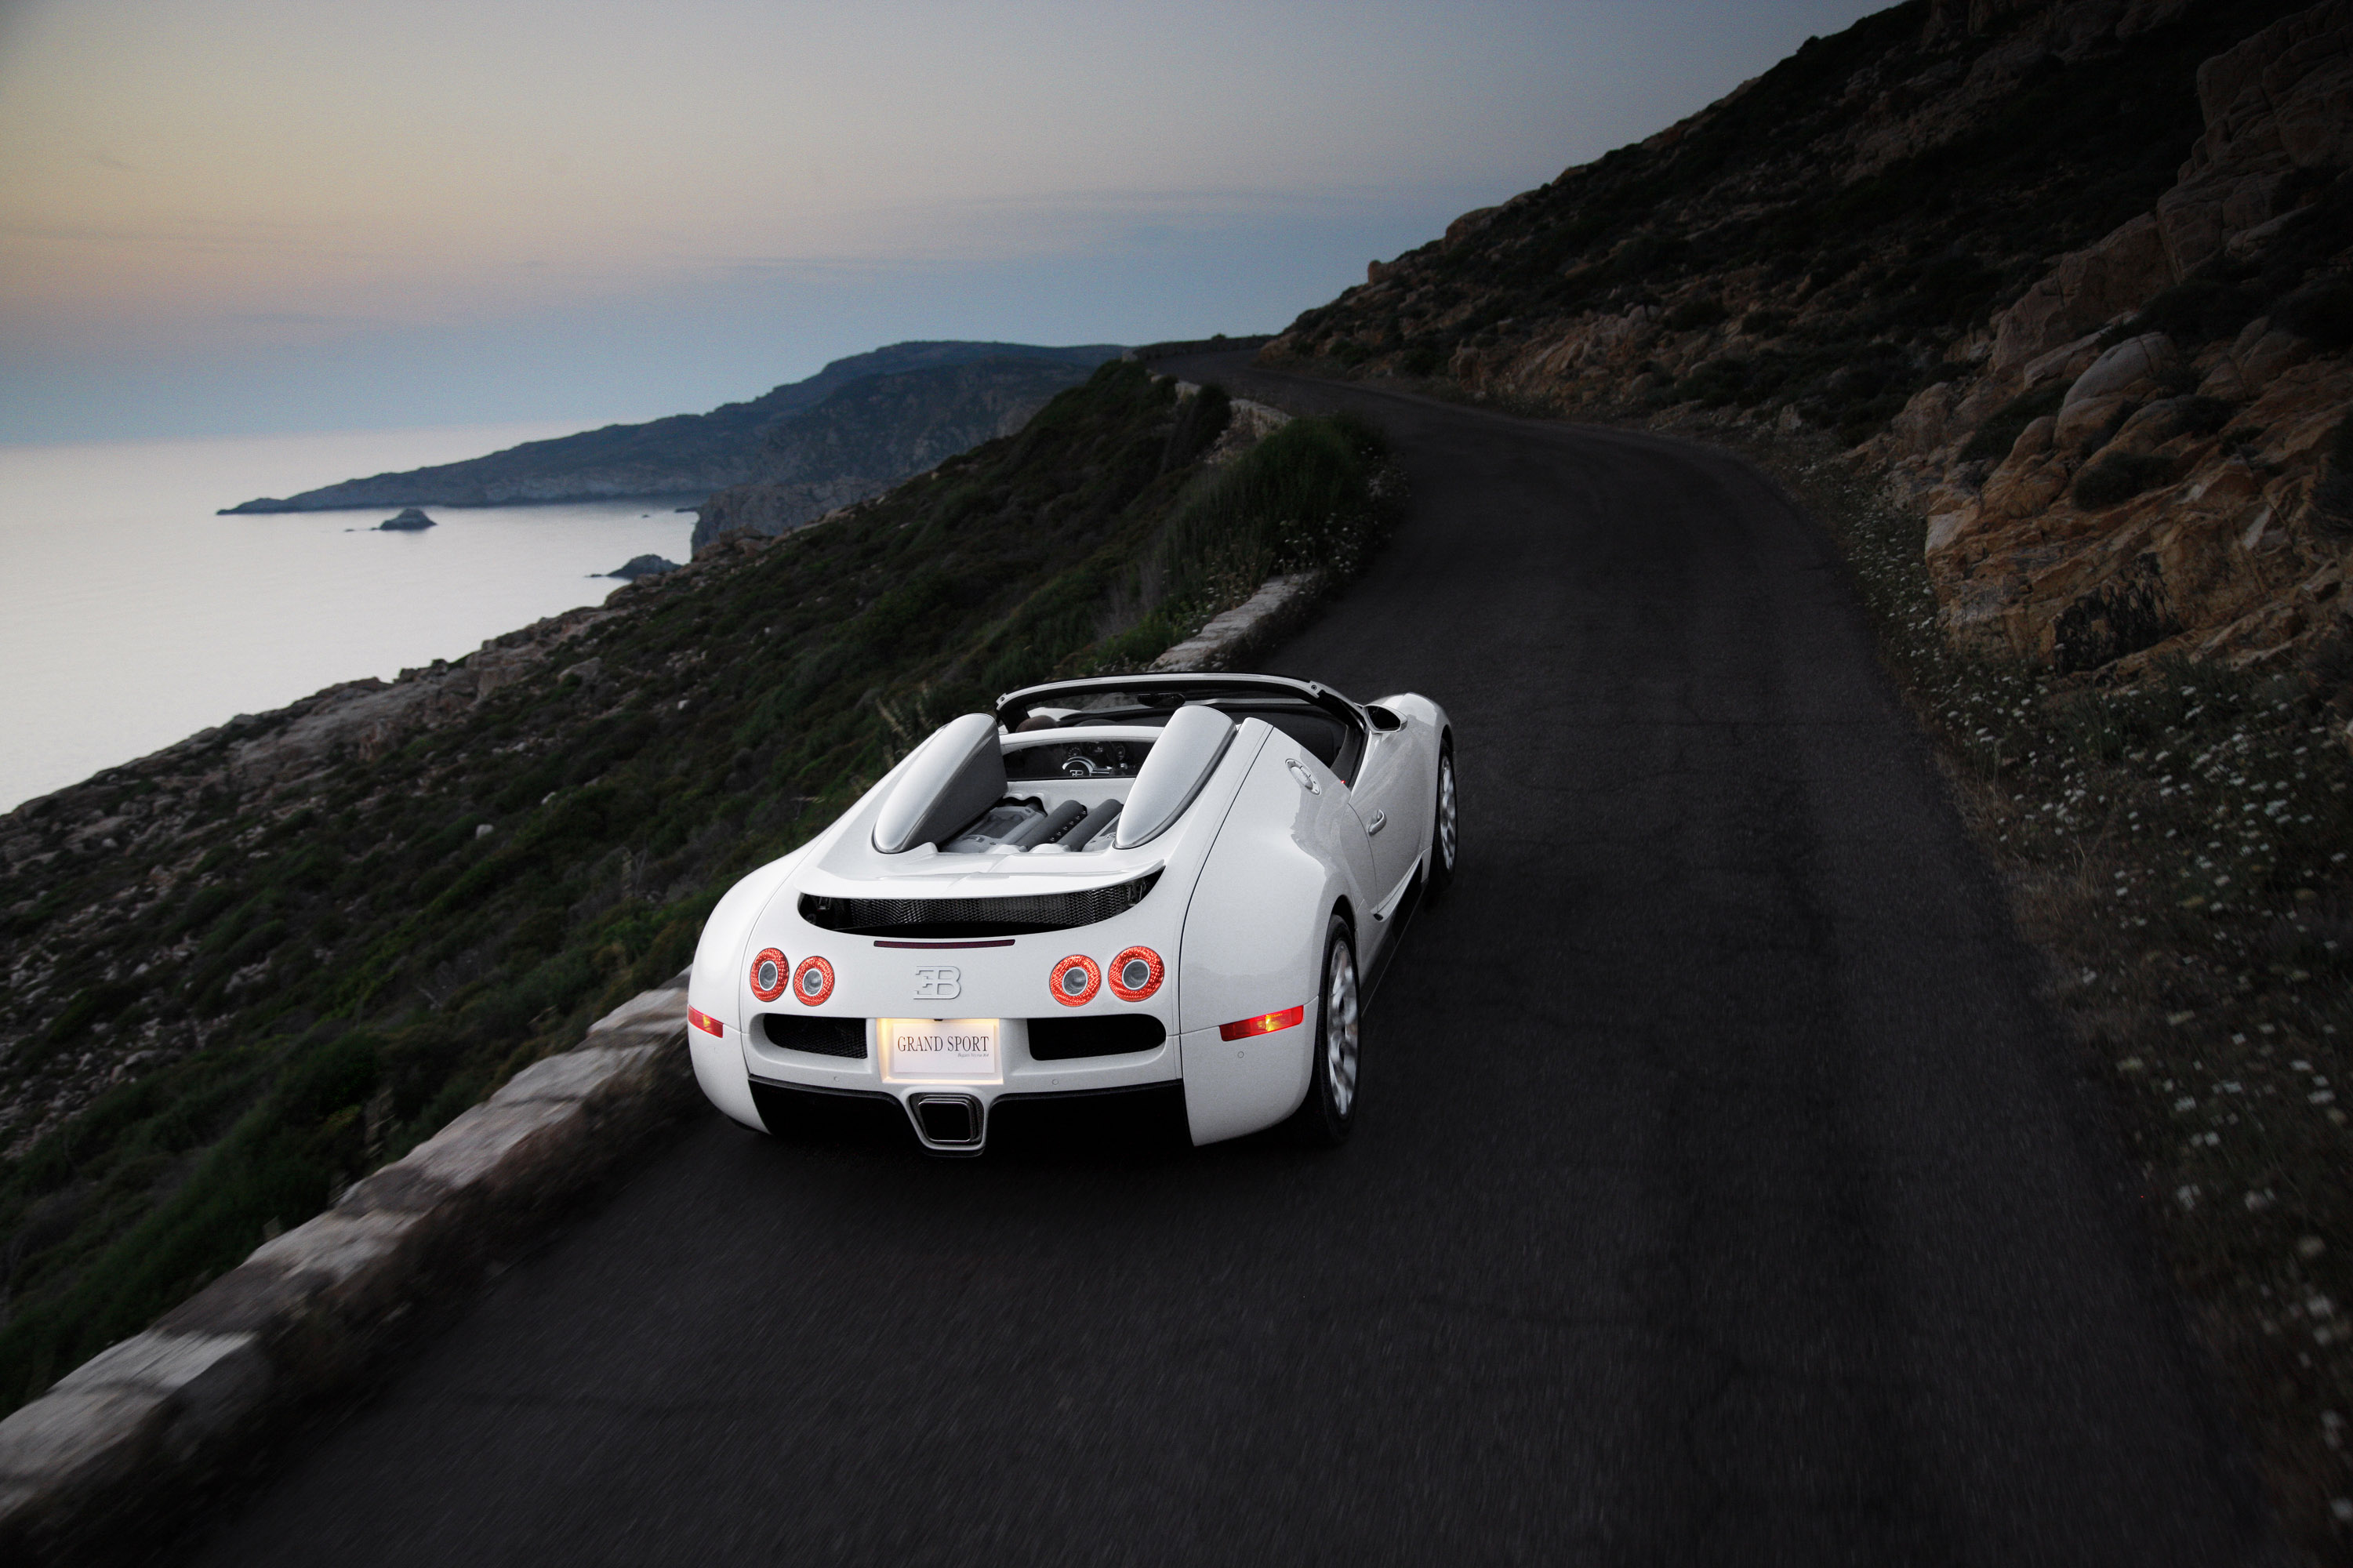 bugatti-veyron-164-grand-sport-10 Exciting Bugatti Veyron Cost for Oil Change Cars Trend